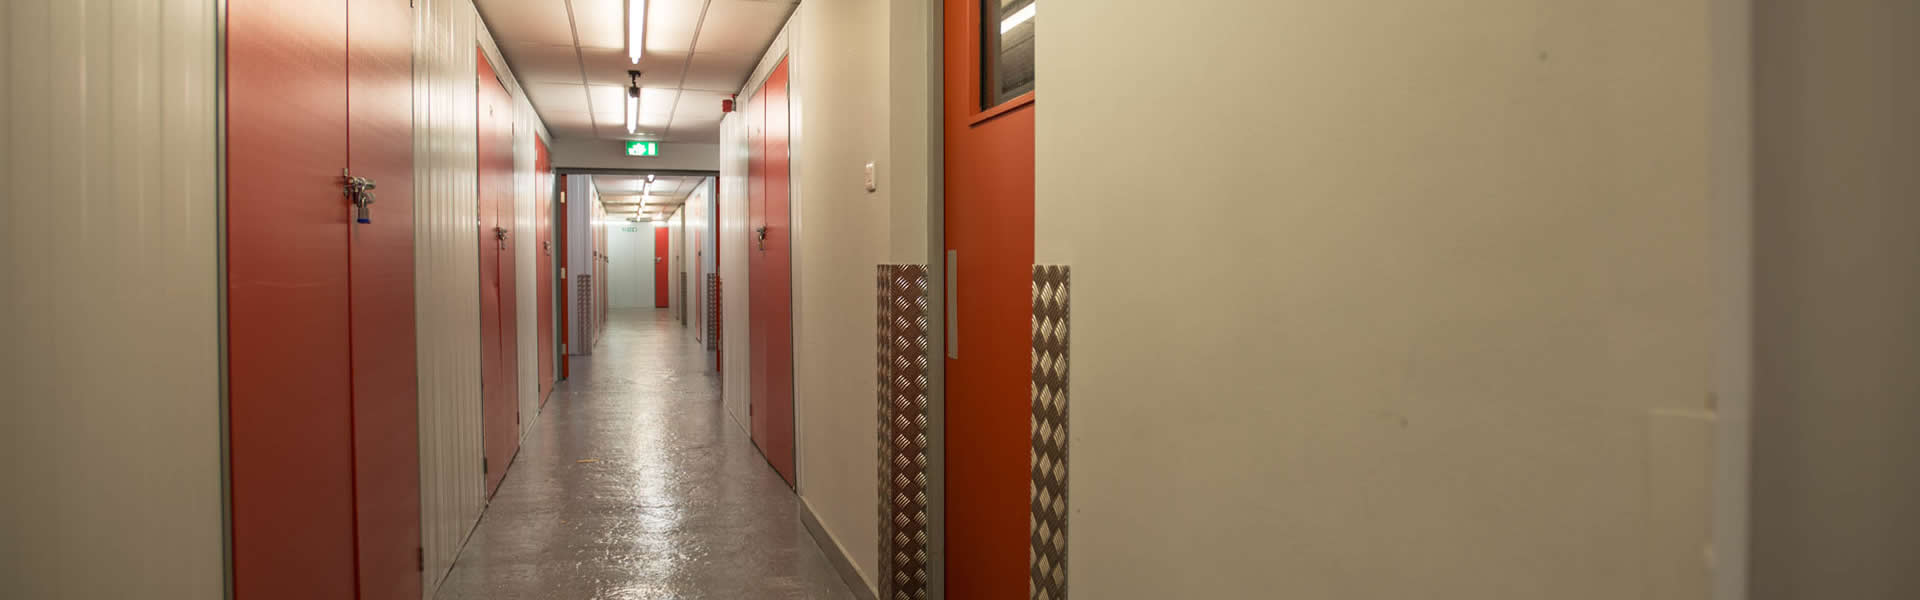 Storage Rental Perth Self Storage Perth Tayside Perth Self Store